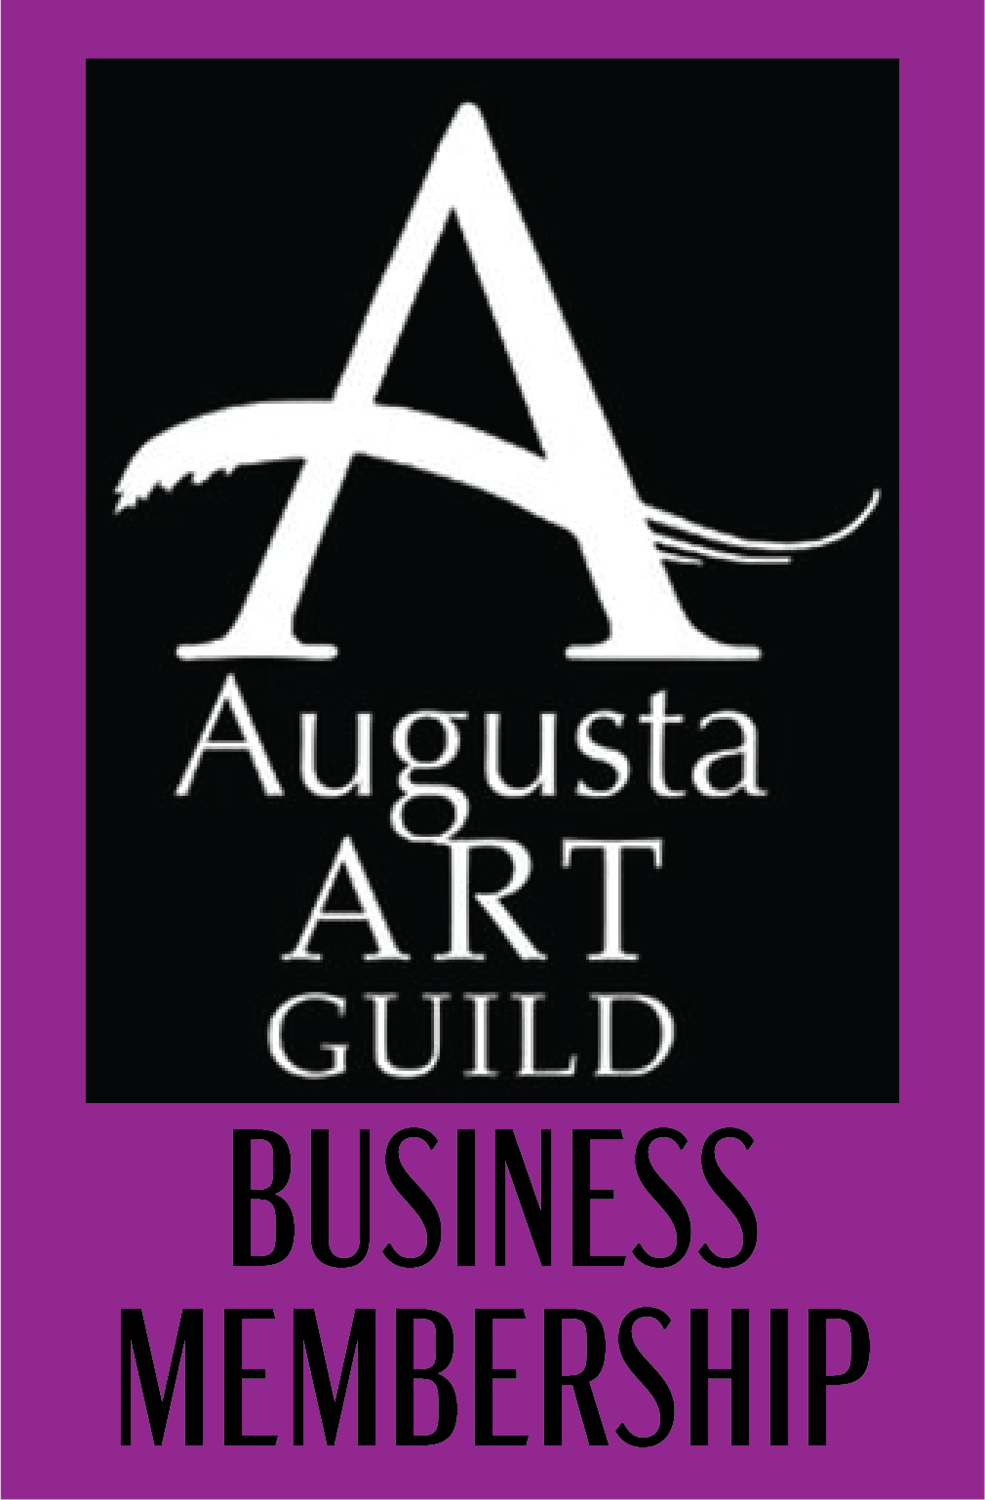 Business AAG Annual Membership donation